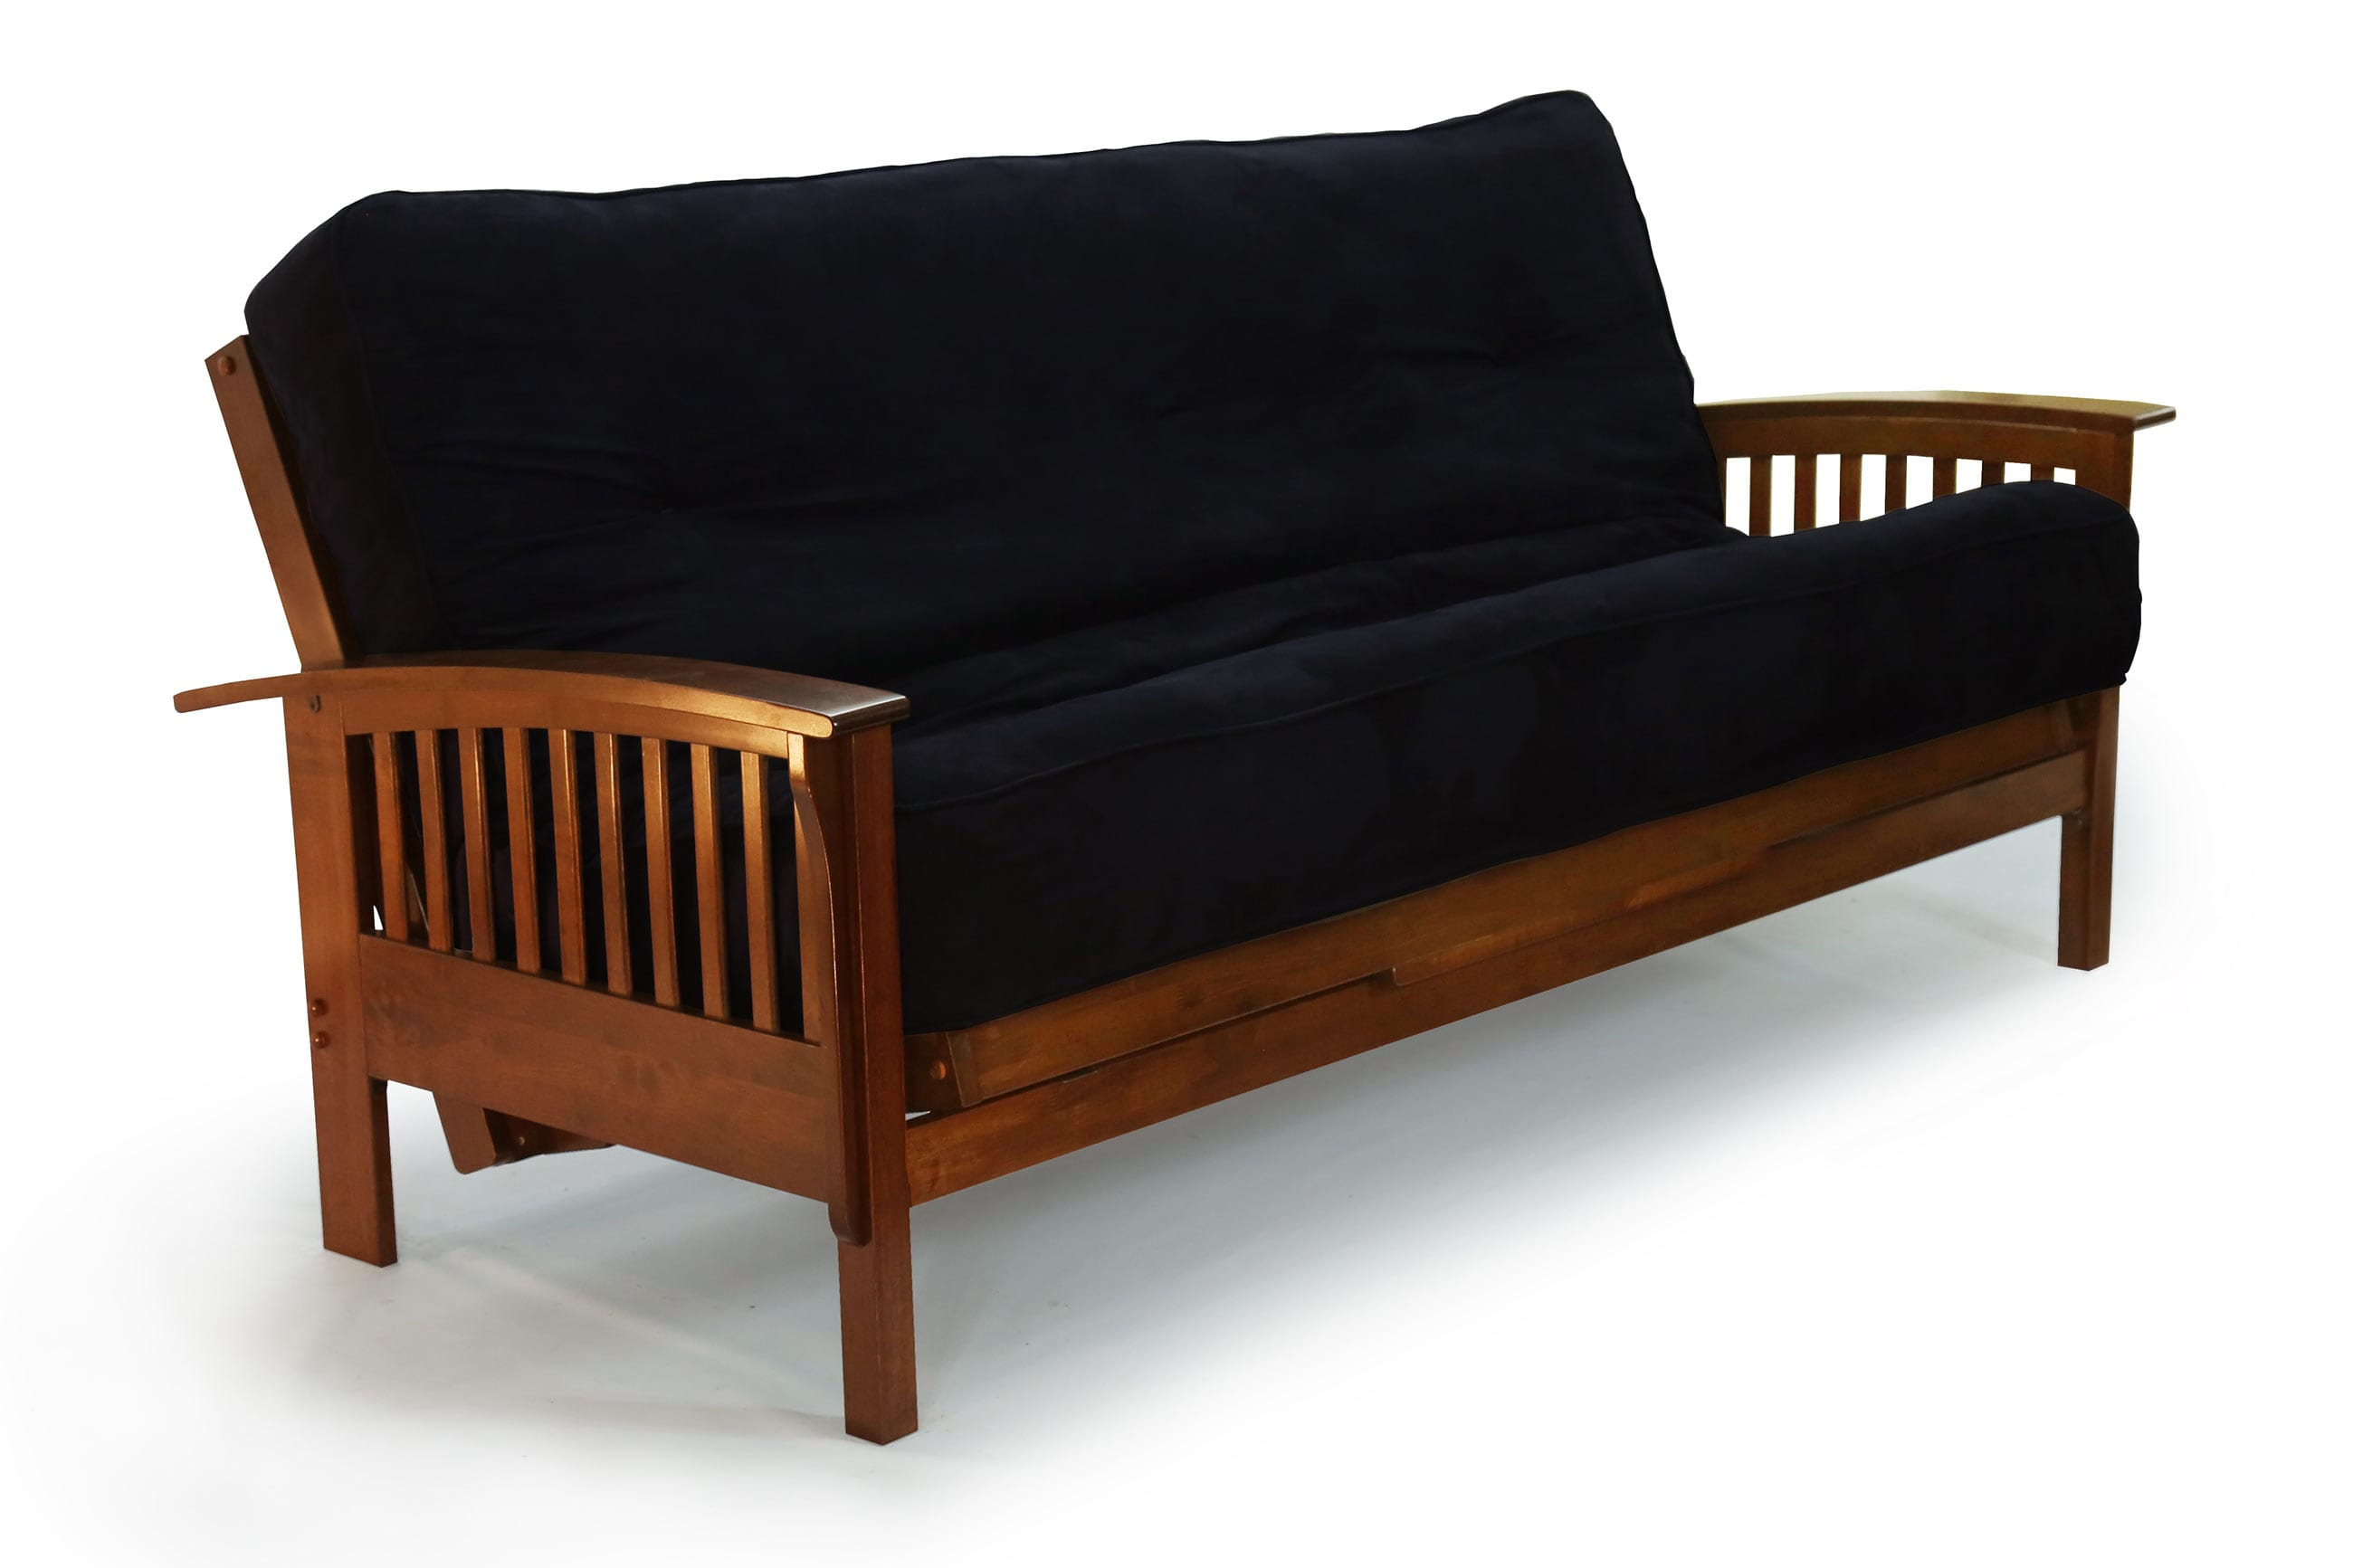 Winchester Futon Frame By Night Day